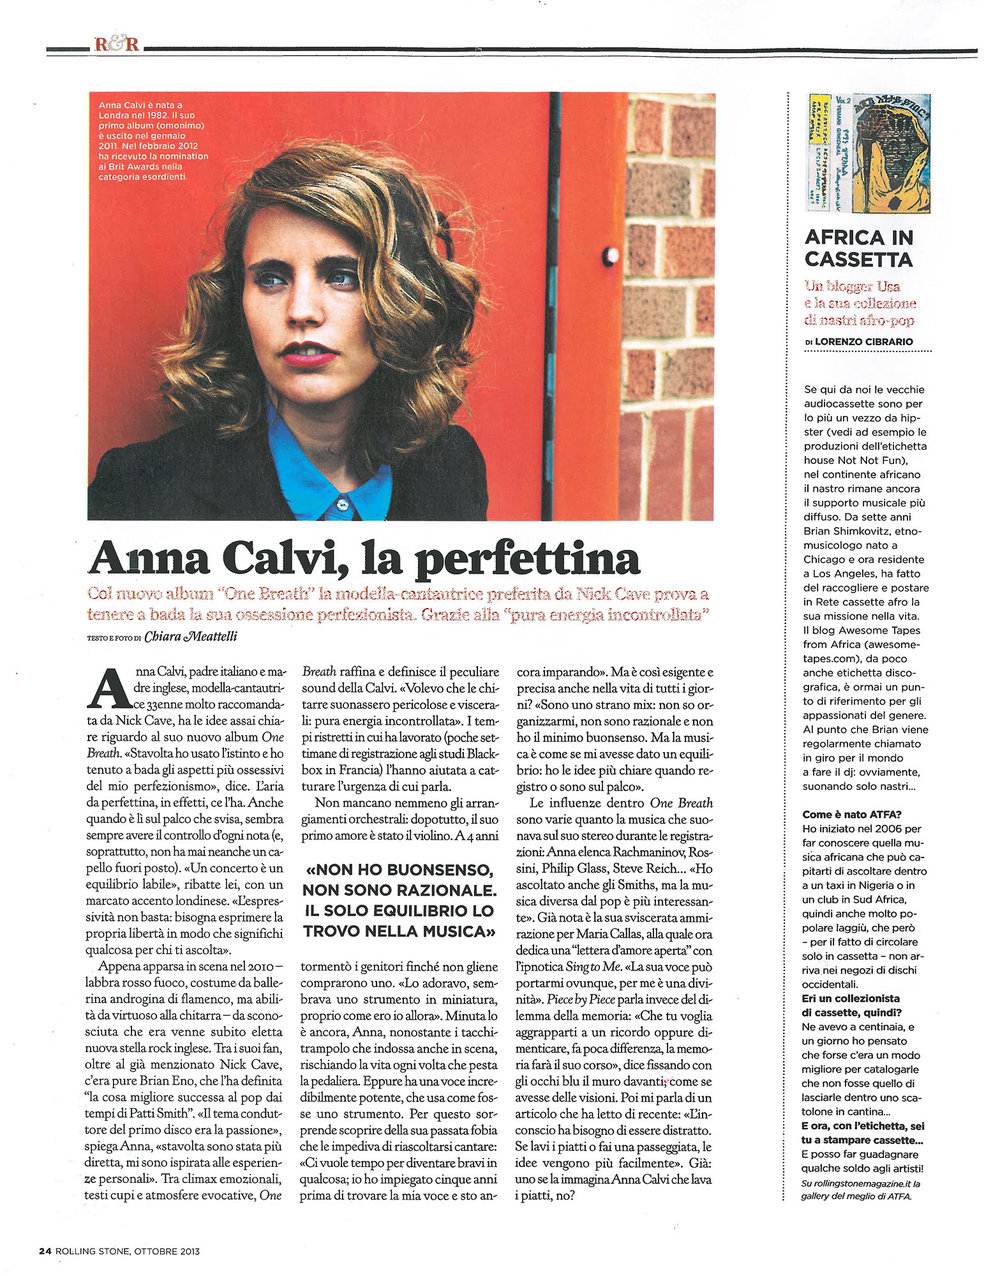 Rolling Stone magazine: Anna Calvi interview & photo